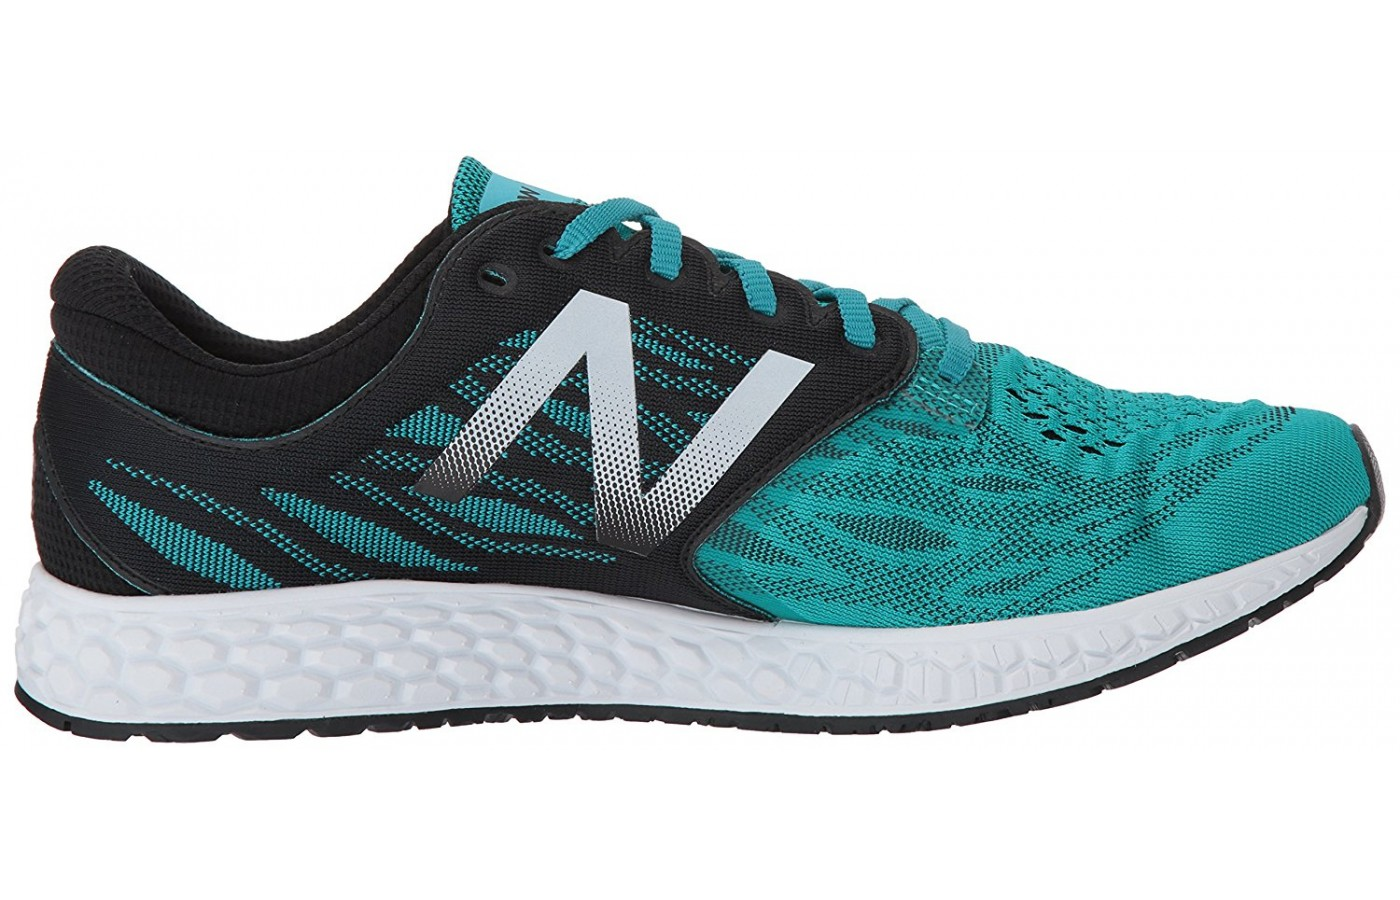 ff0749b99b New Balance Fresh Foam Zante V3 Reviewed